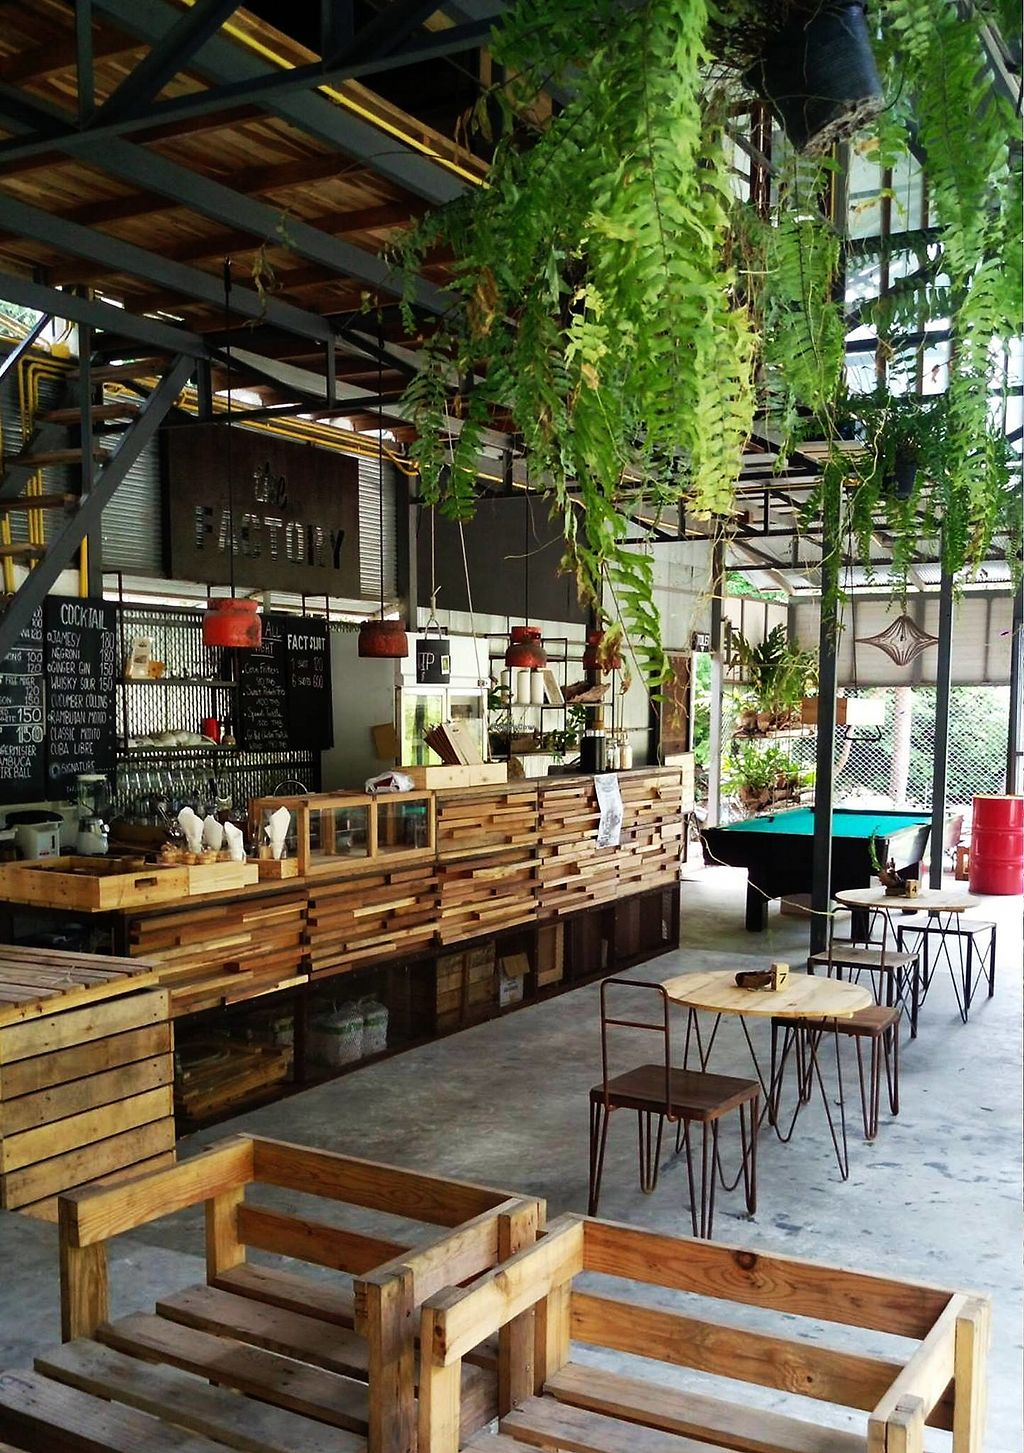 """Photo of The Factory Cafe  by <a href=""""/members/profile/AliceFerrer"""">AliceFerrer</a> <br/>The Factory Cafe <br/> September 15, 2017  - <a href='/contact/abuse/image/101030/304633'>Report</a>"""